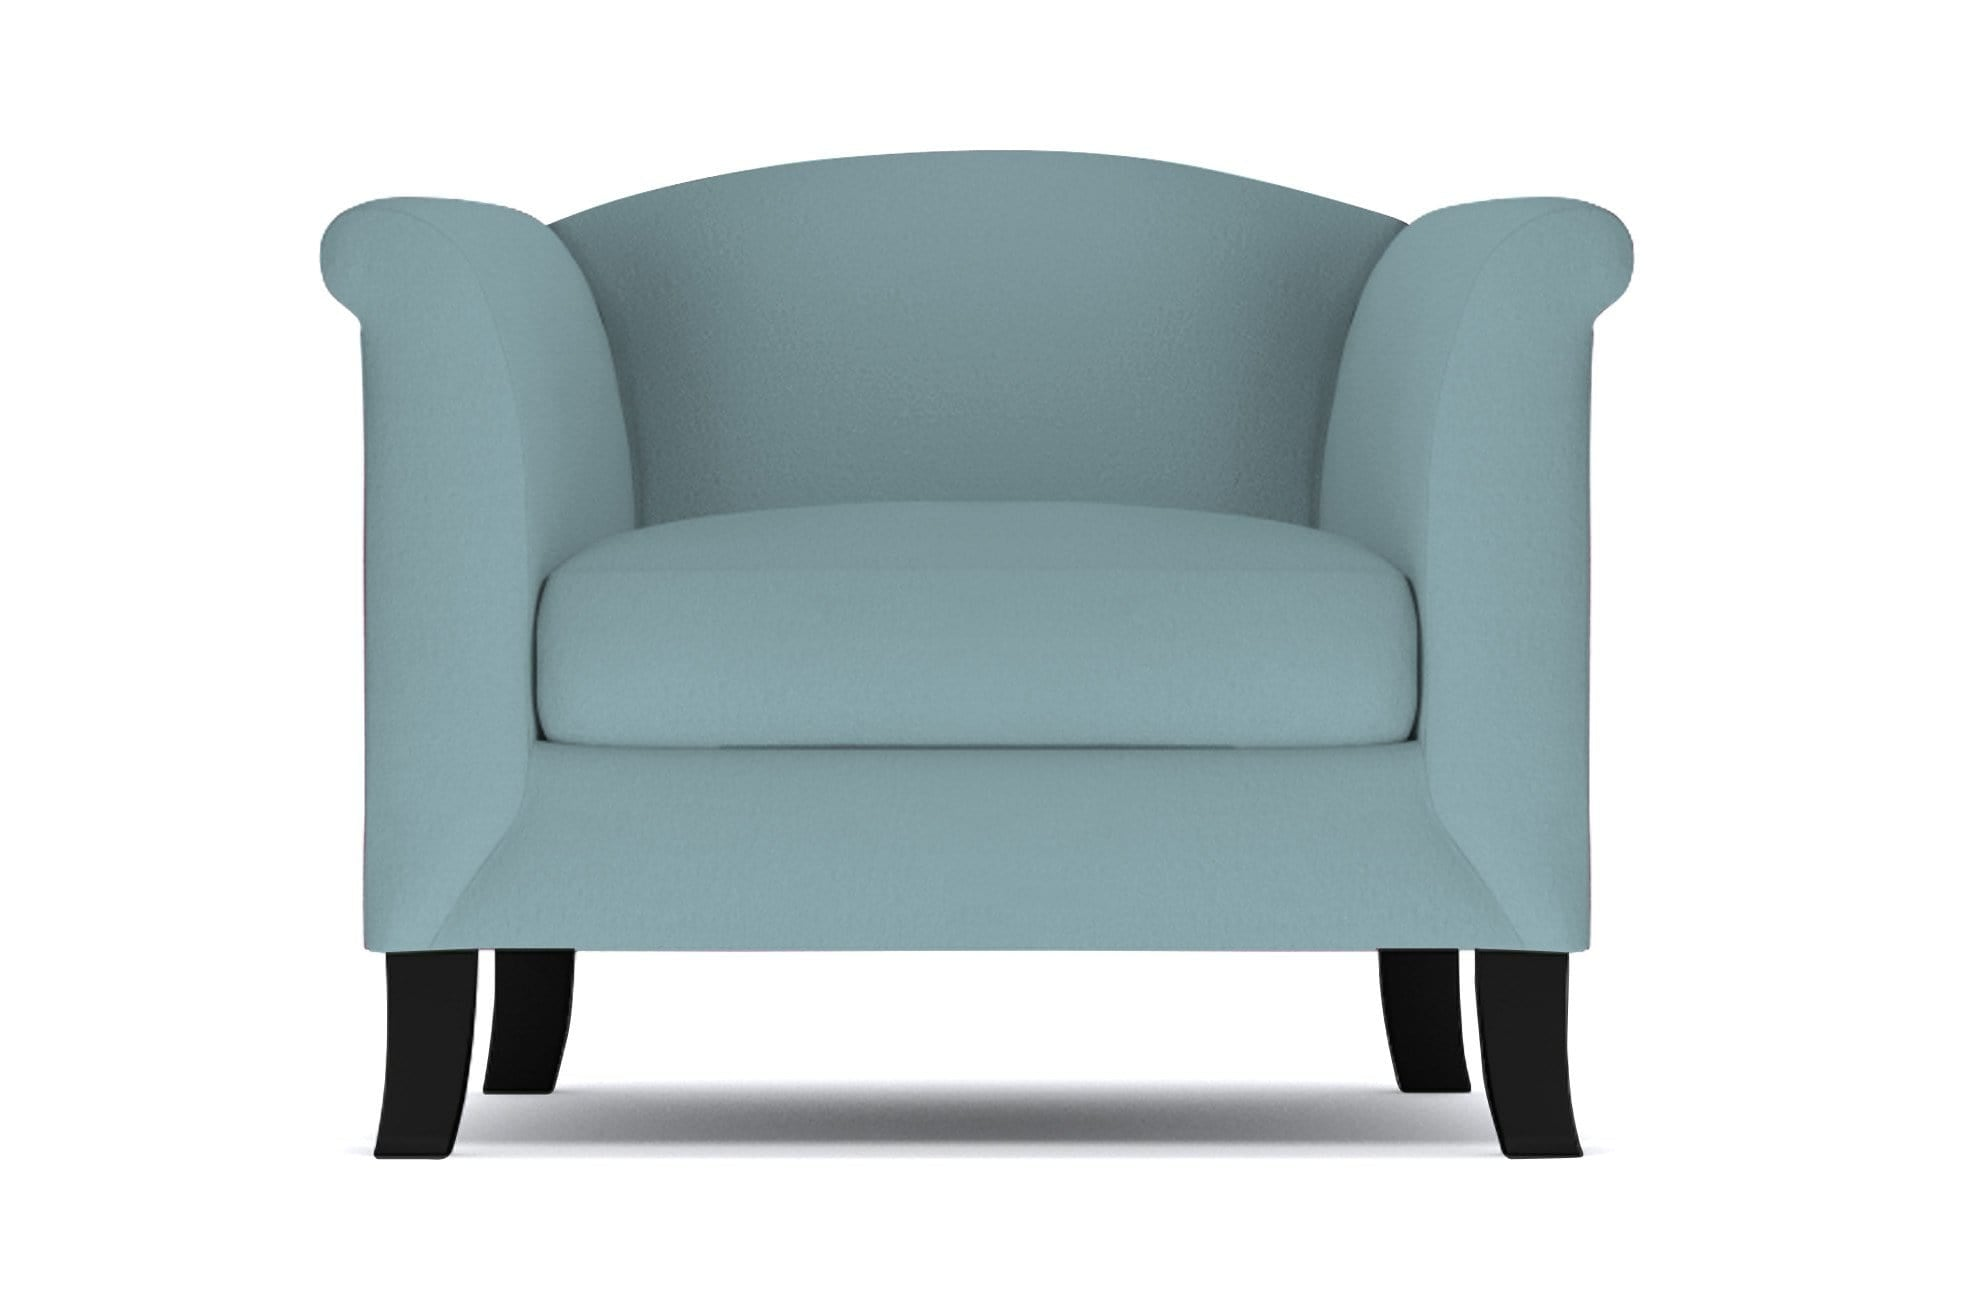 Albright_Chair__Blue_Velvet___Accent_Chair__Furniture_sold_by_Apt2B